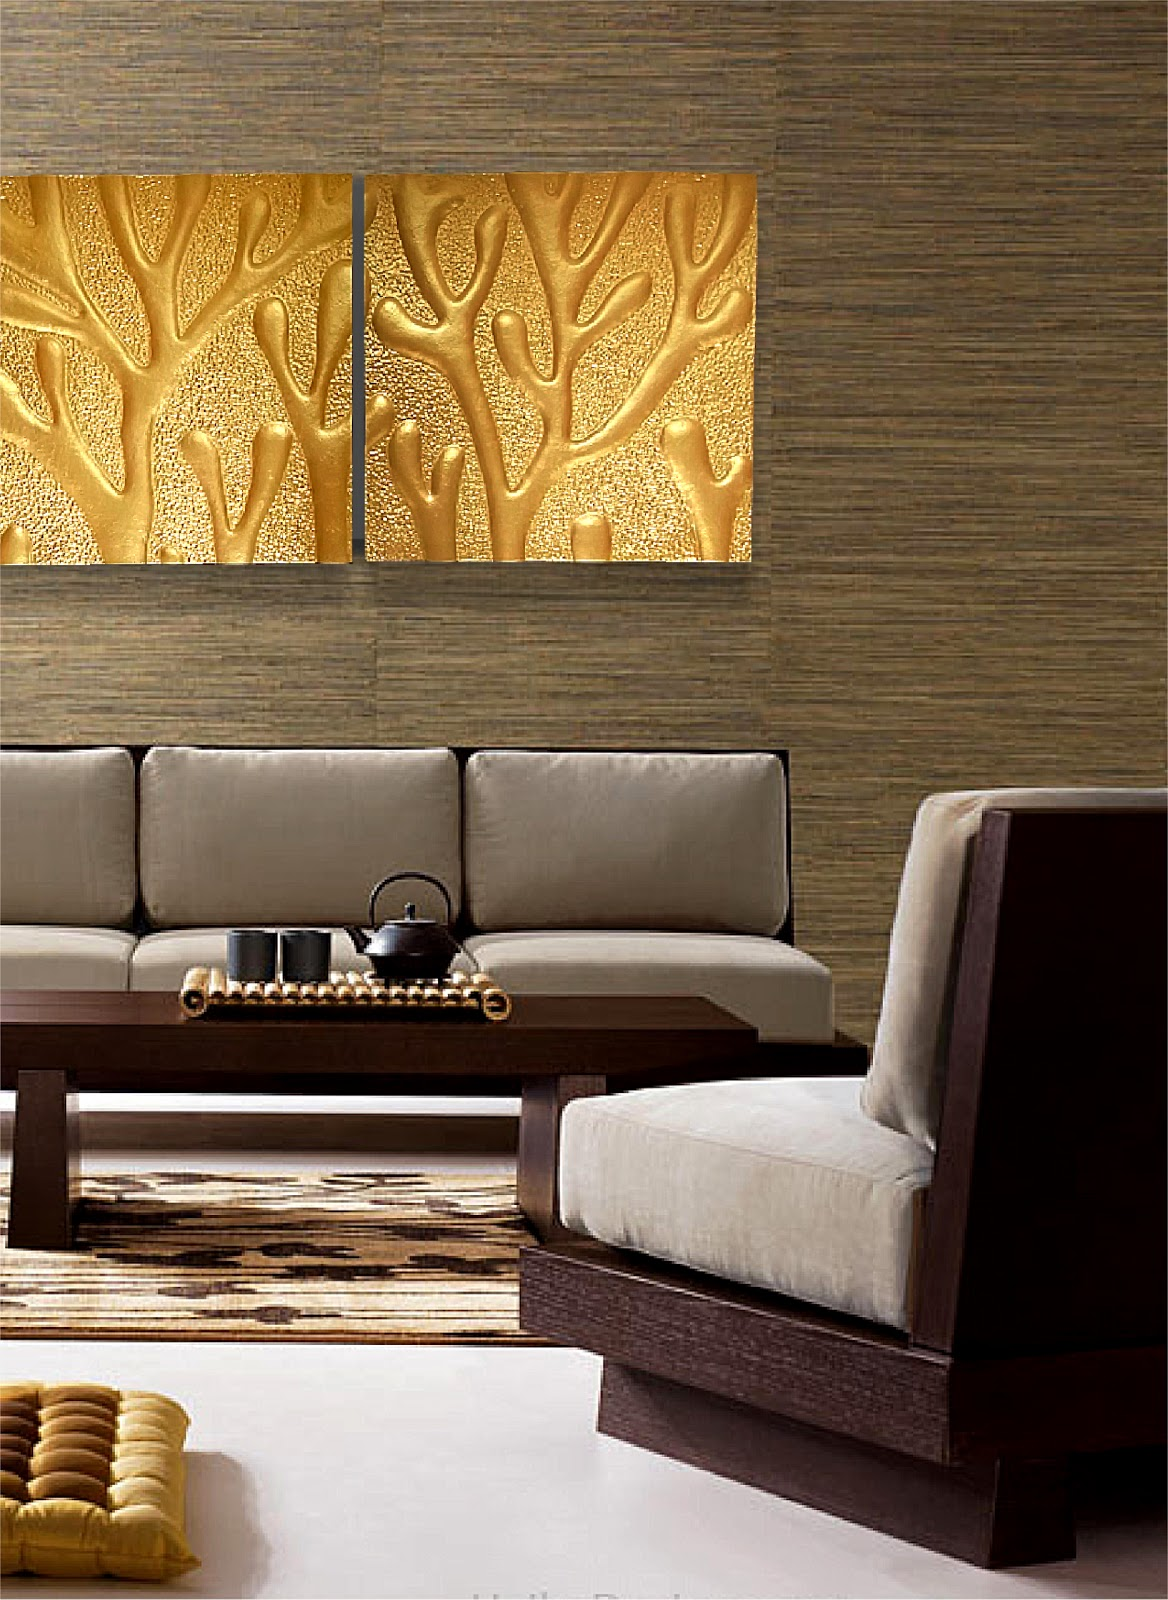 Singapore\'s latest trend for wall decoration